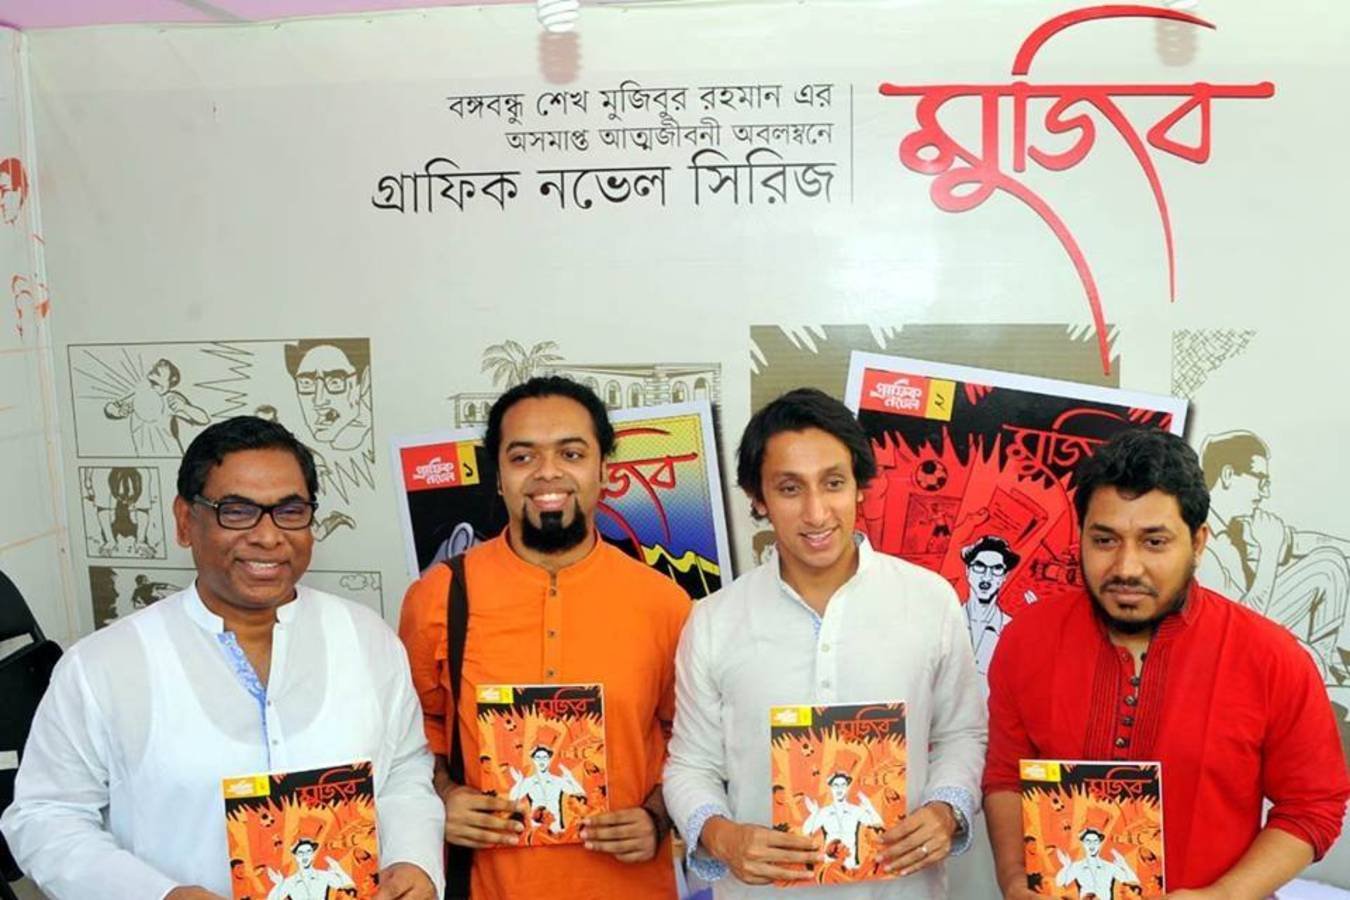 Part-2 of 'Mujib' Graphic Novel Series Unveiled